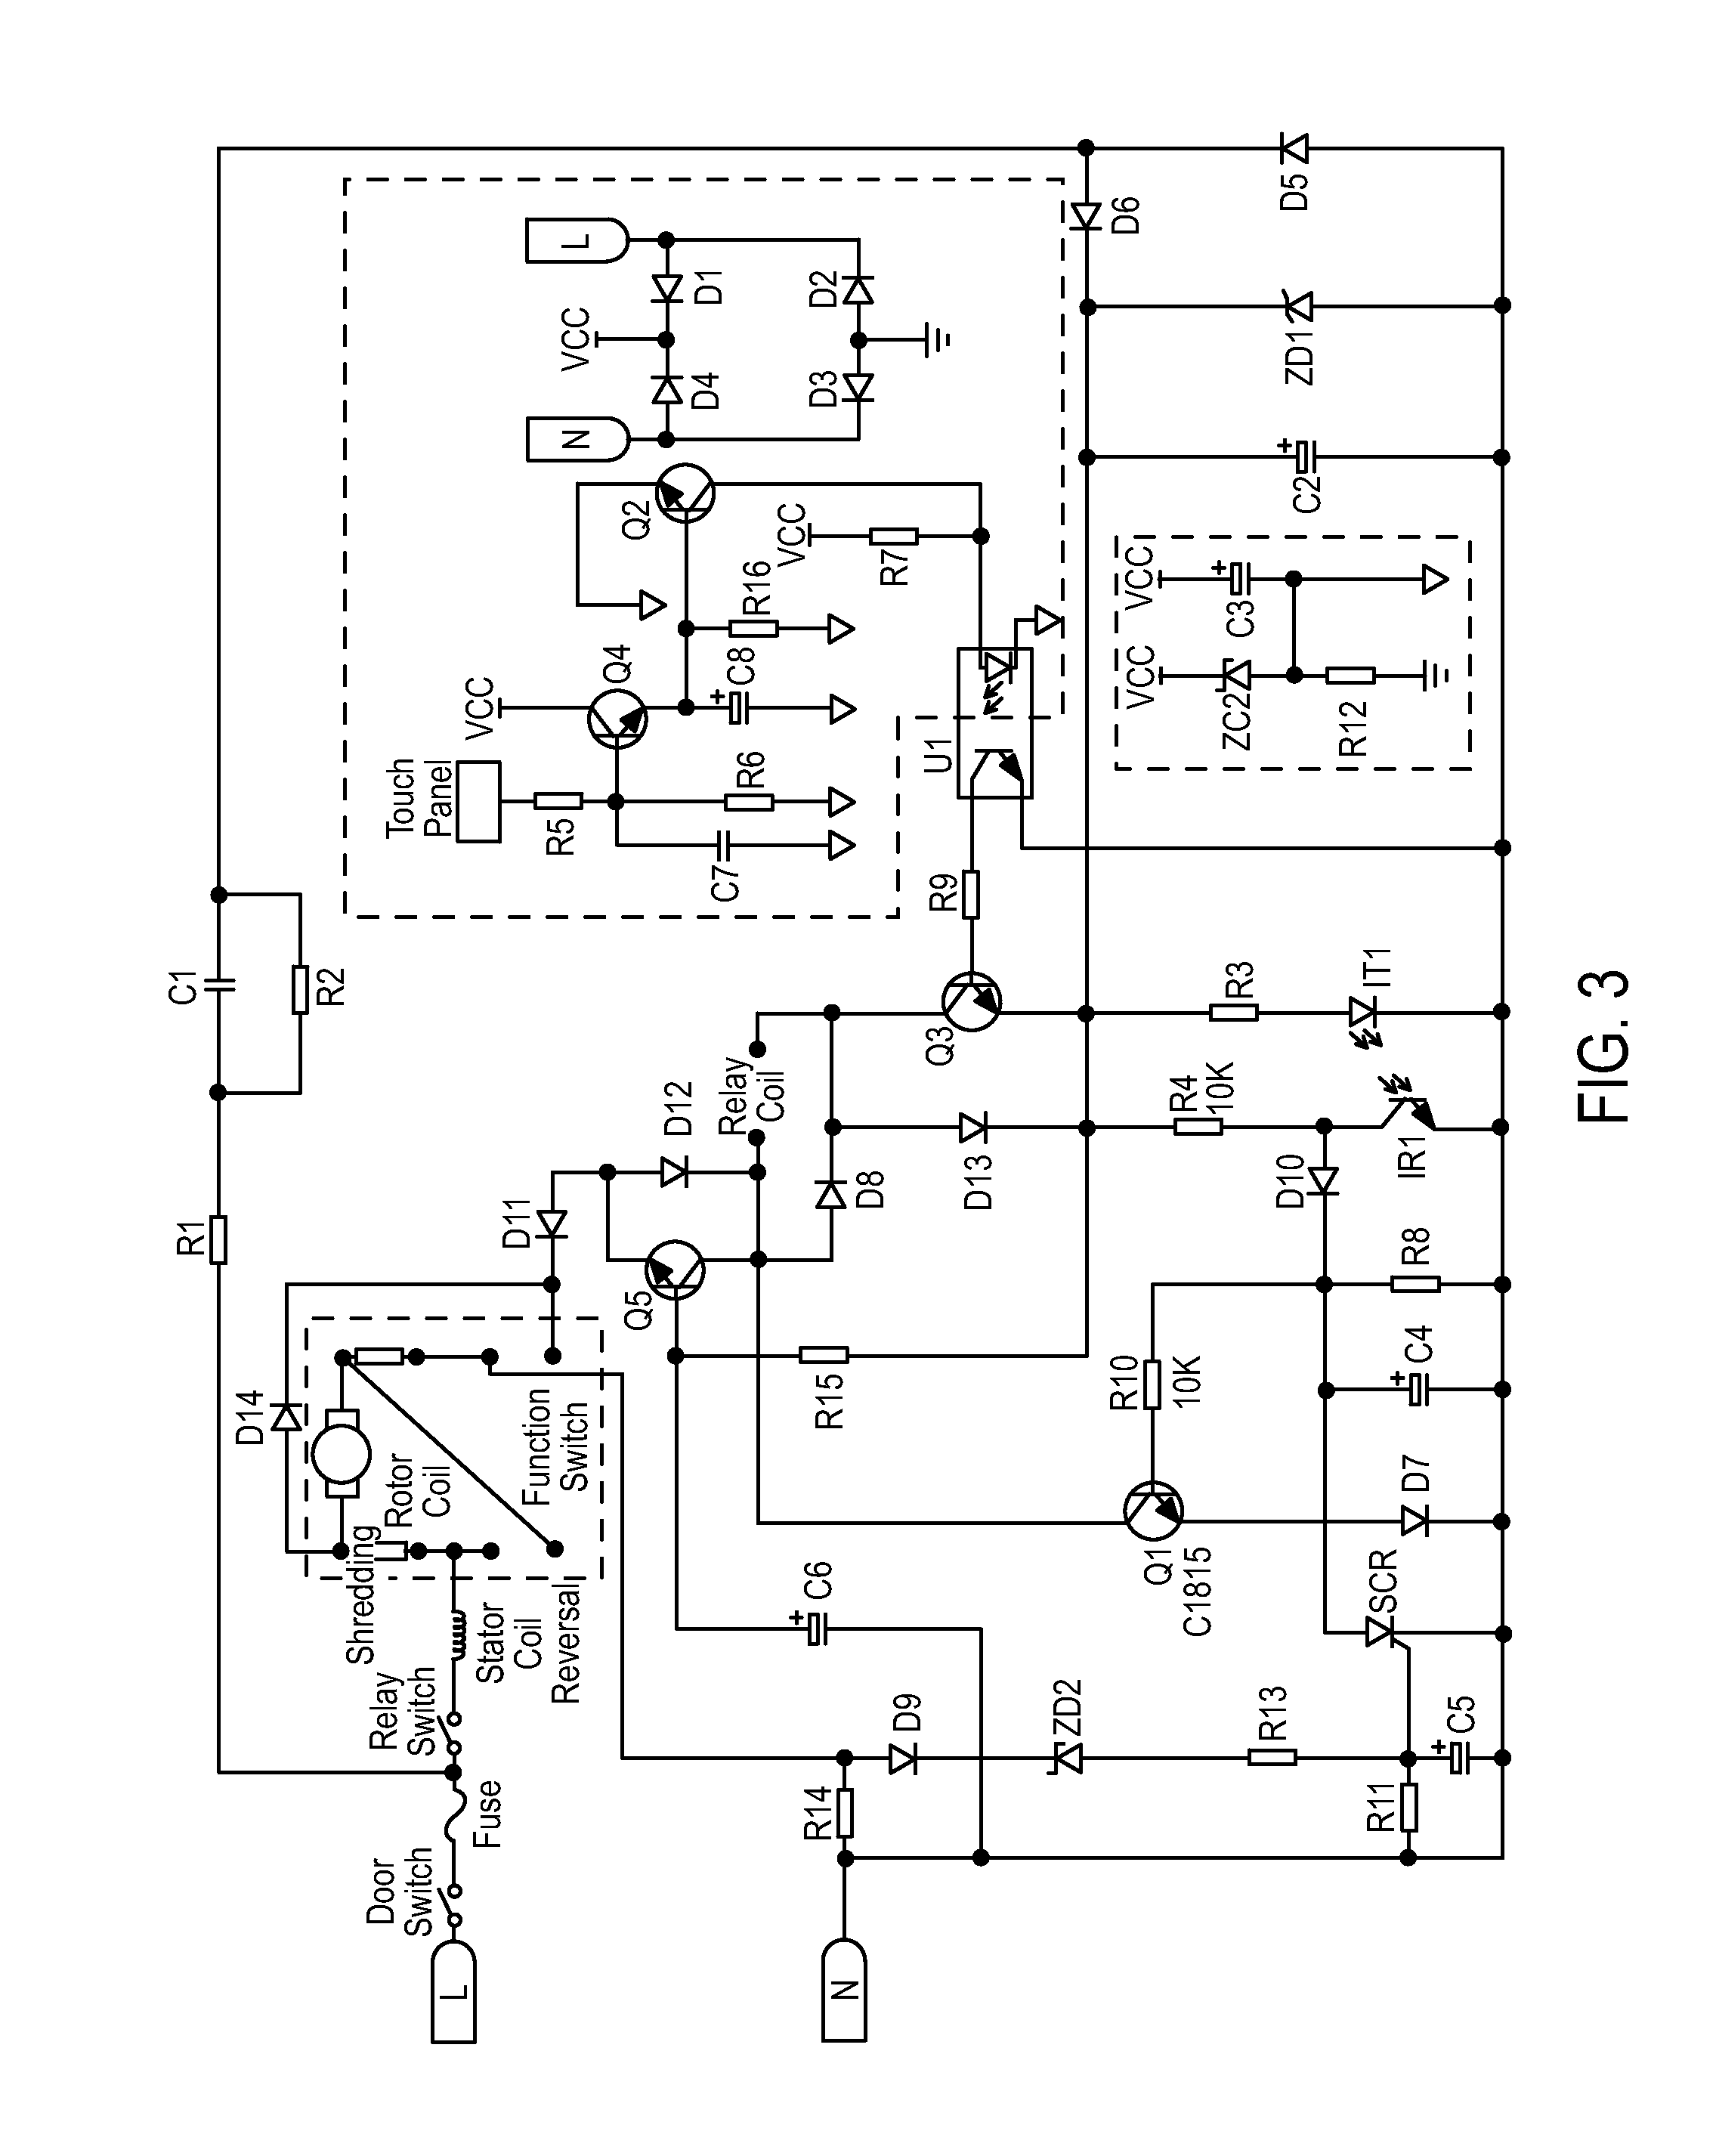 stanley magic access wiring diagram   35 wiring diagram